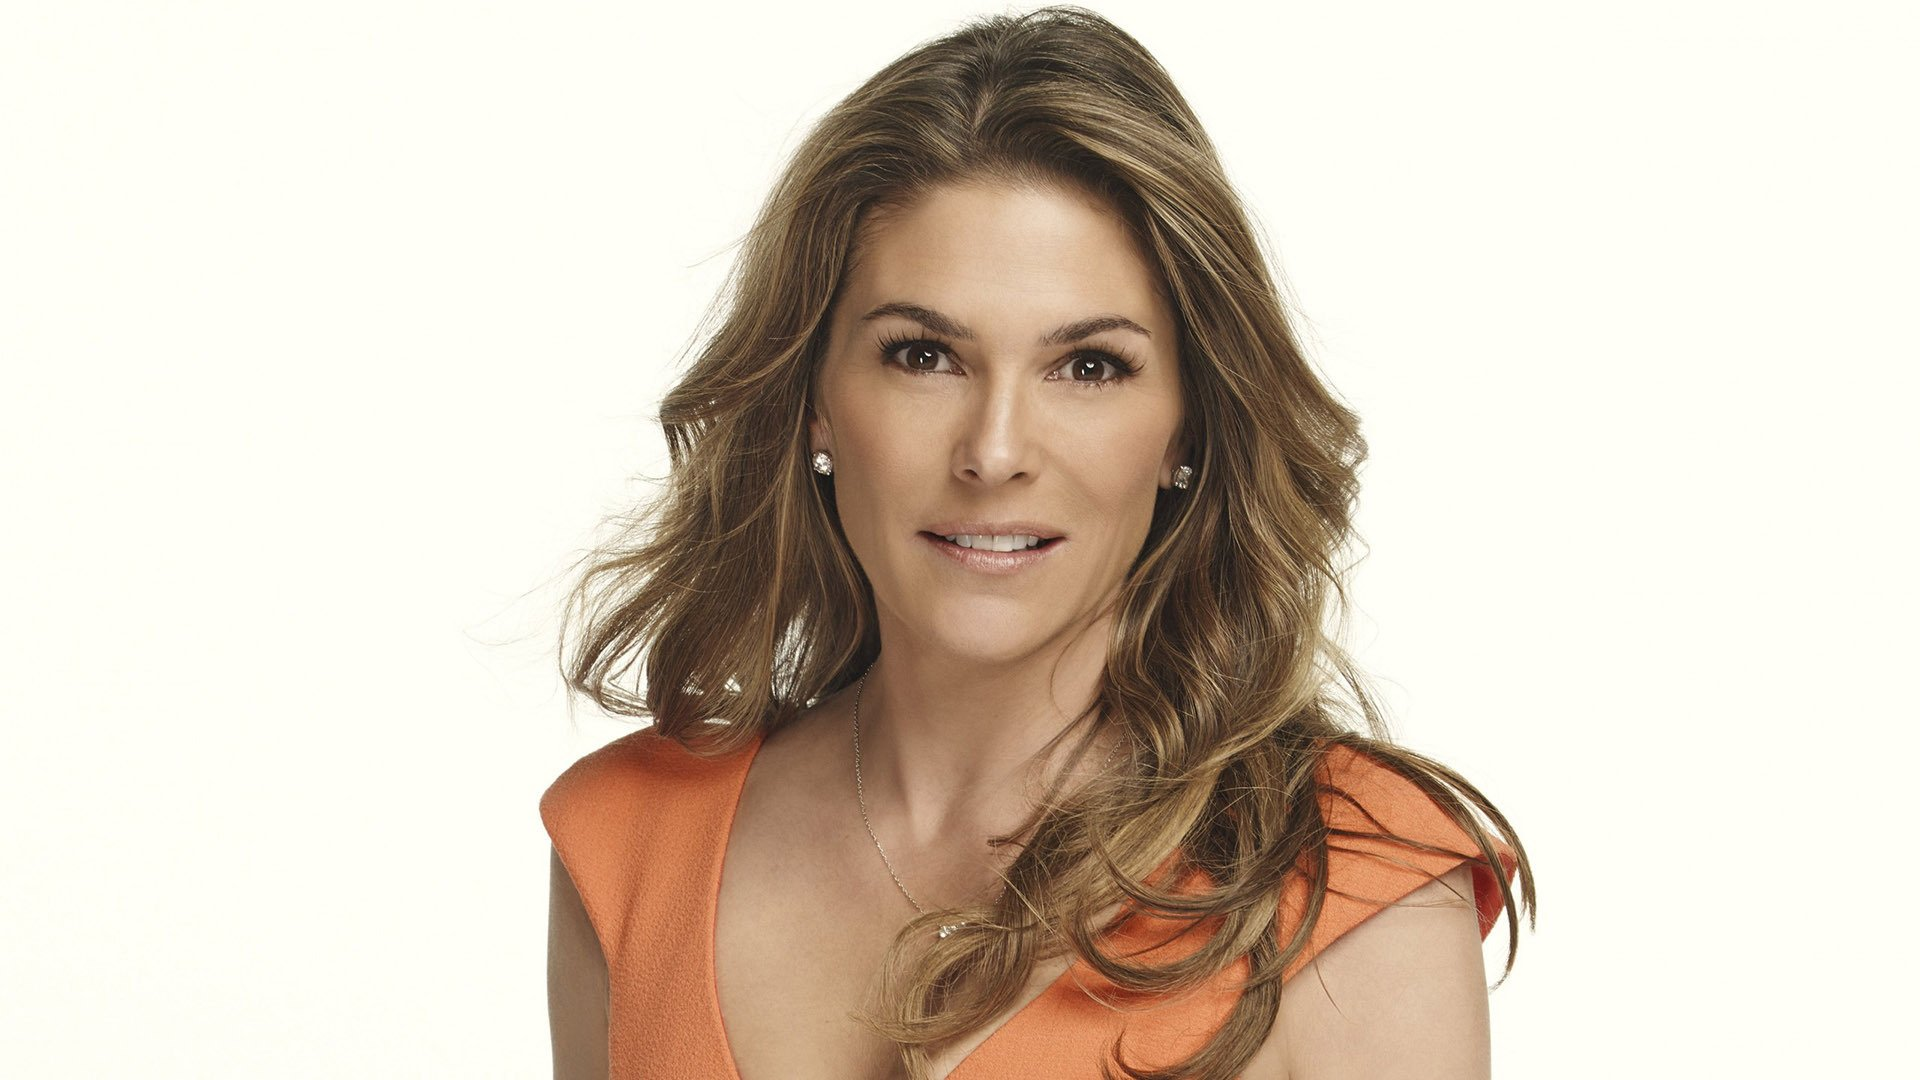 3d Video Games Wallpapers Paige Turco Desktop Wallpaper 60261 1920x1080 Px